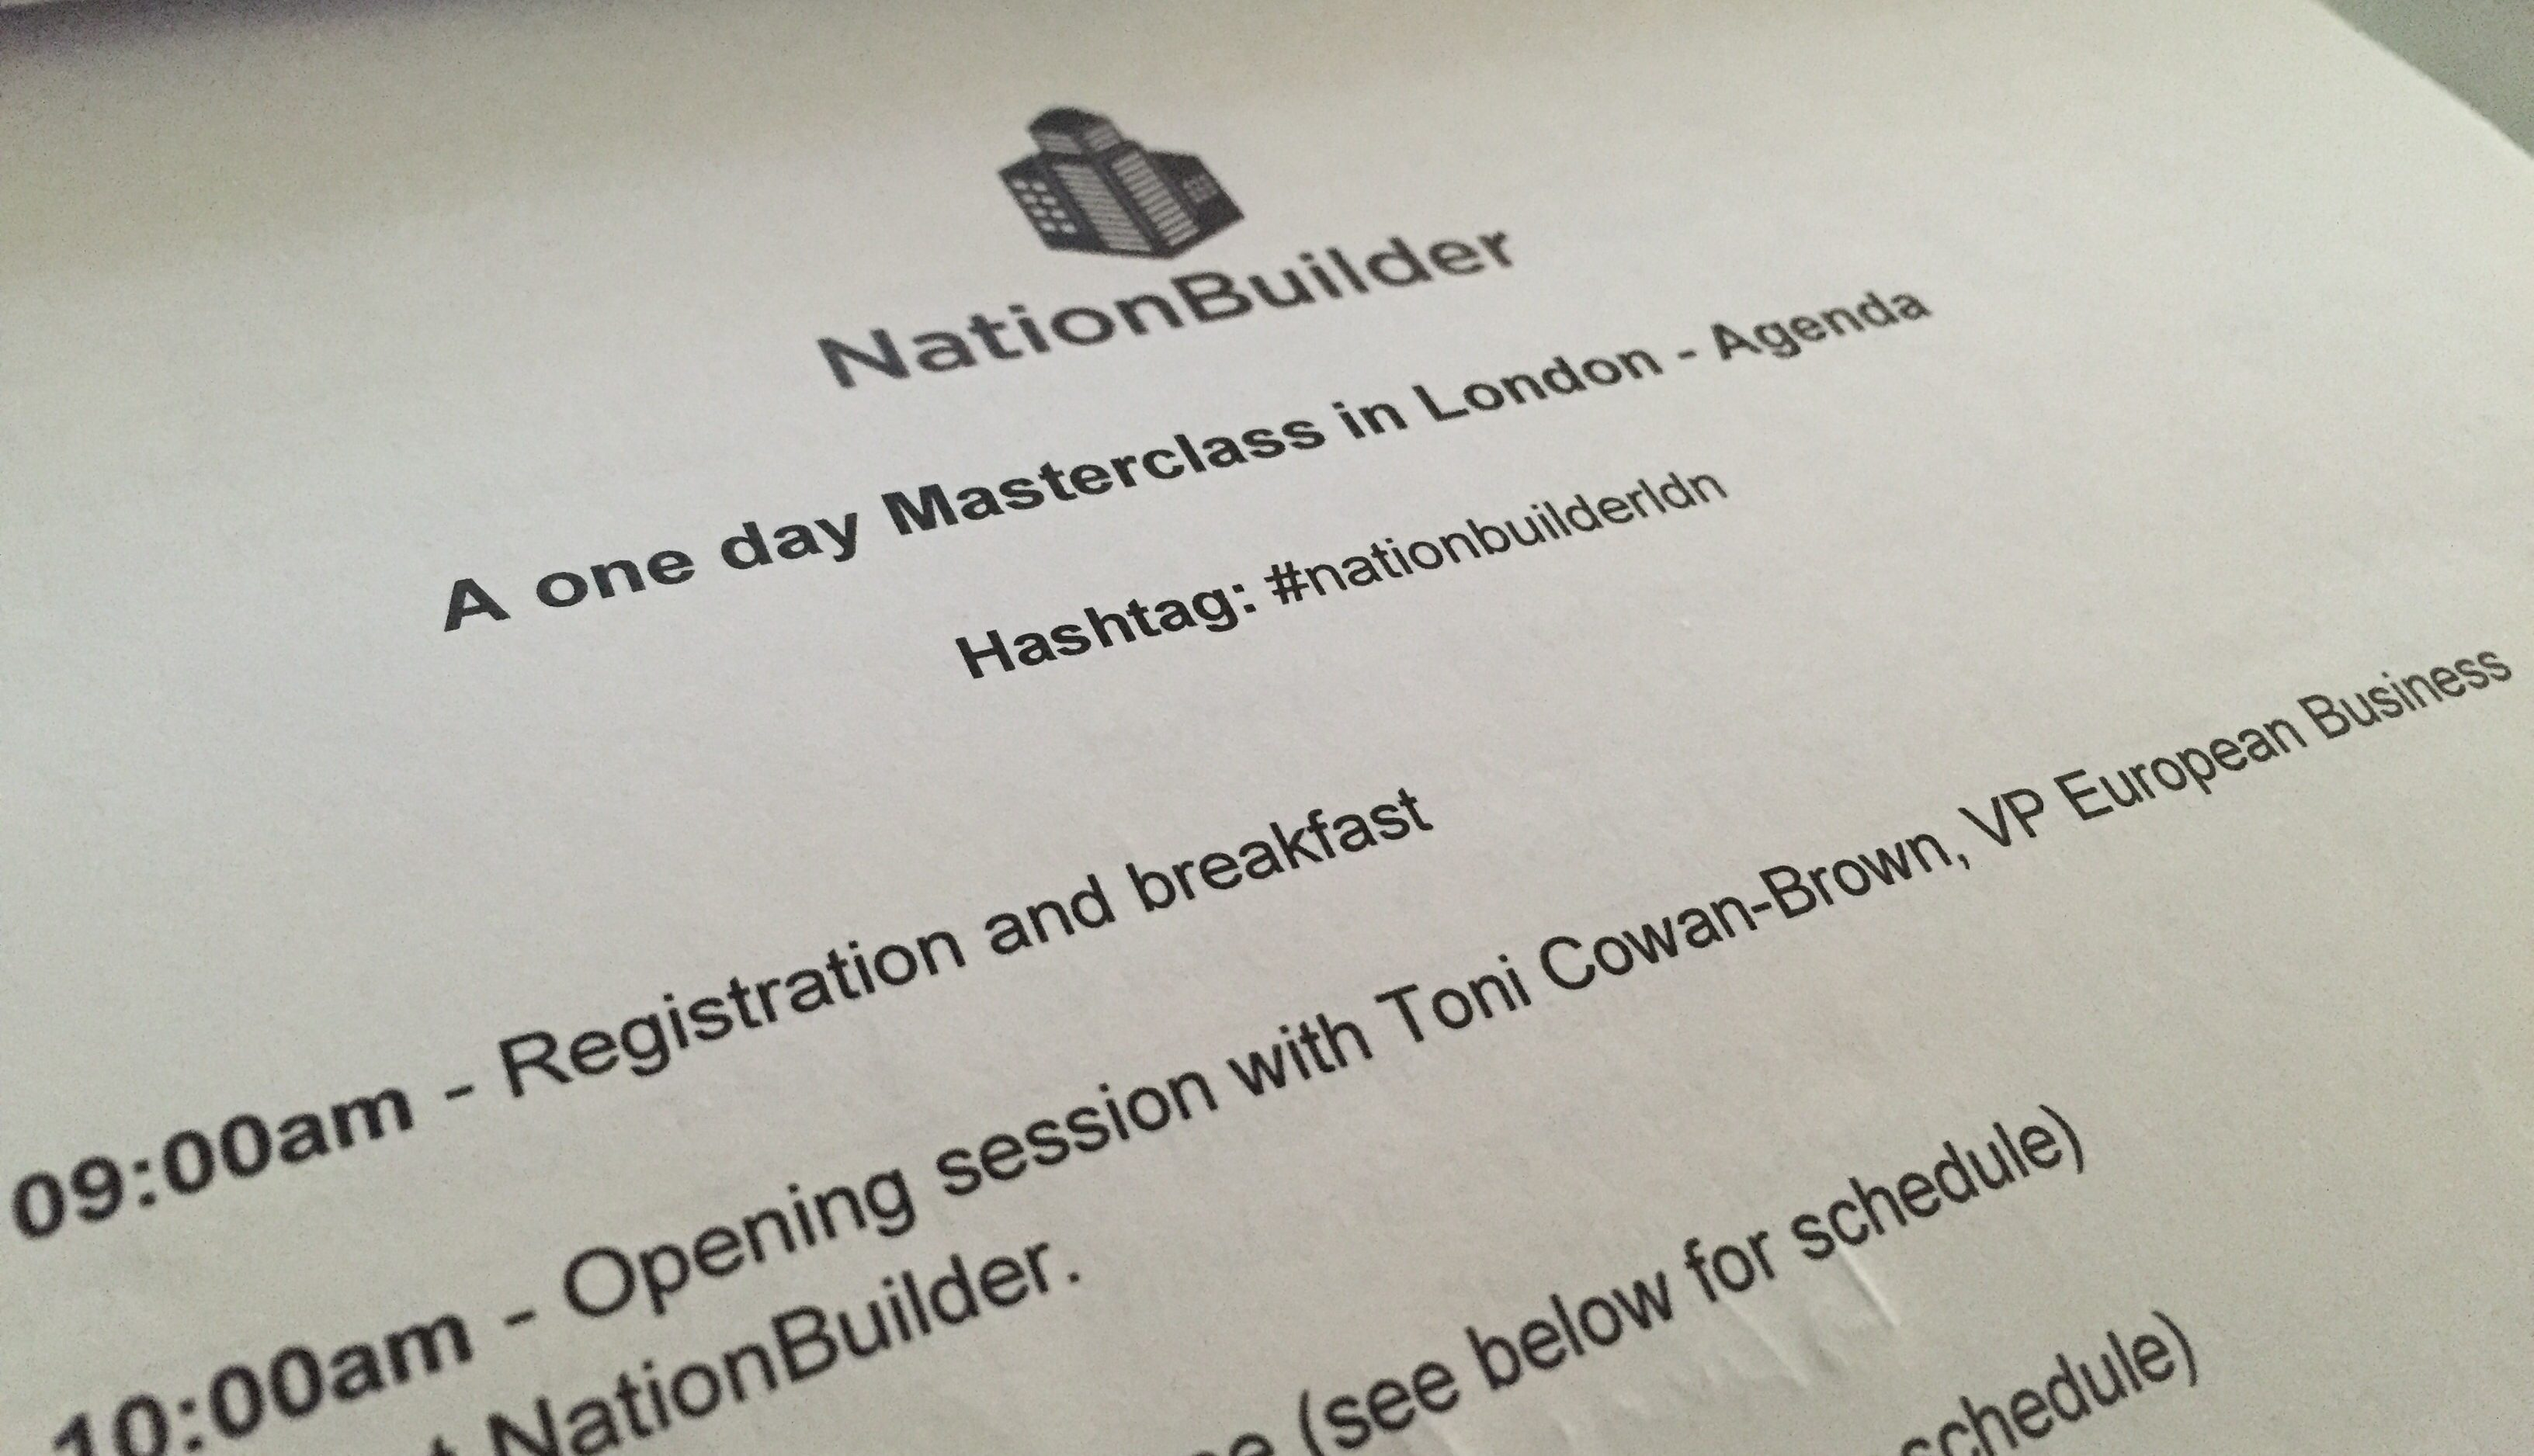 NationBuilder Masterclass agenda